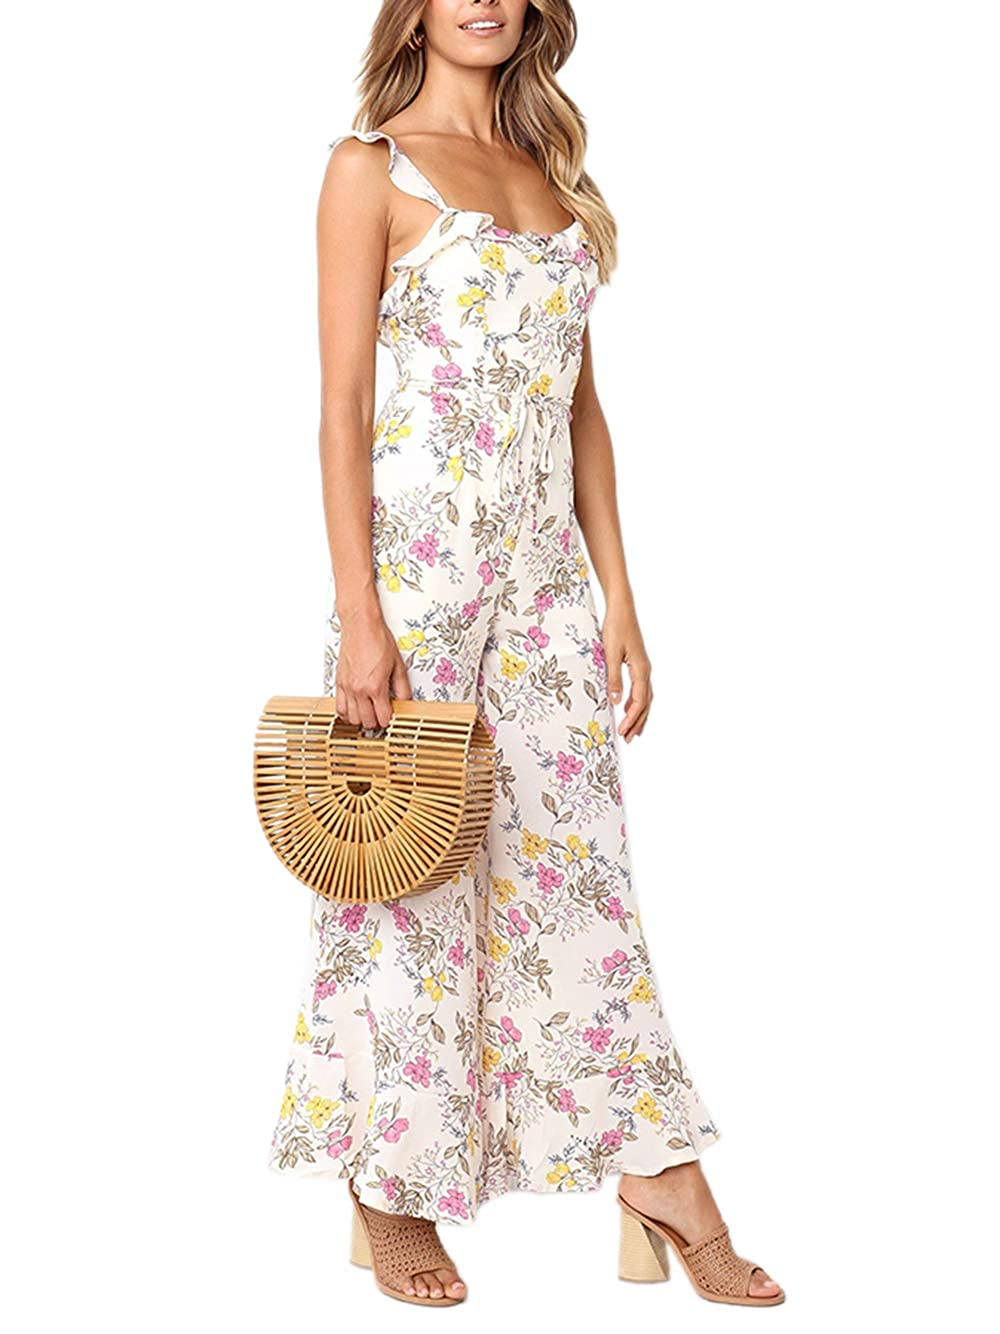 26d23da154075c Amazon.com: Yizenge Women's Casual Floral Print Wide Leg Jumpsuit  Sleeveless Ruffle Strappy Long Pant Rompers: Clothing